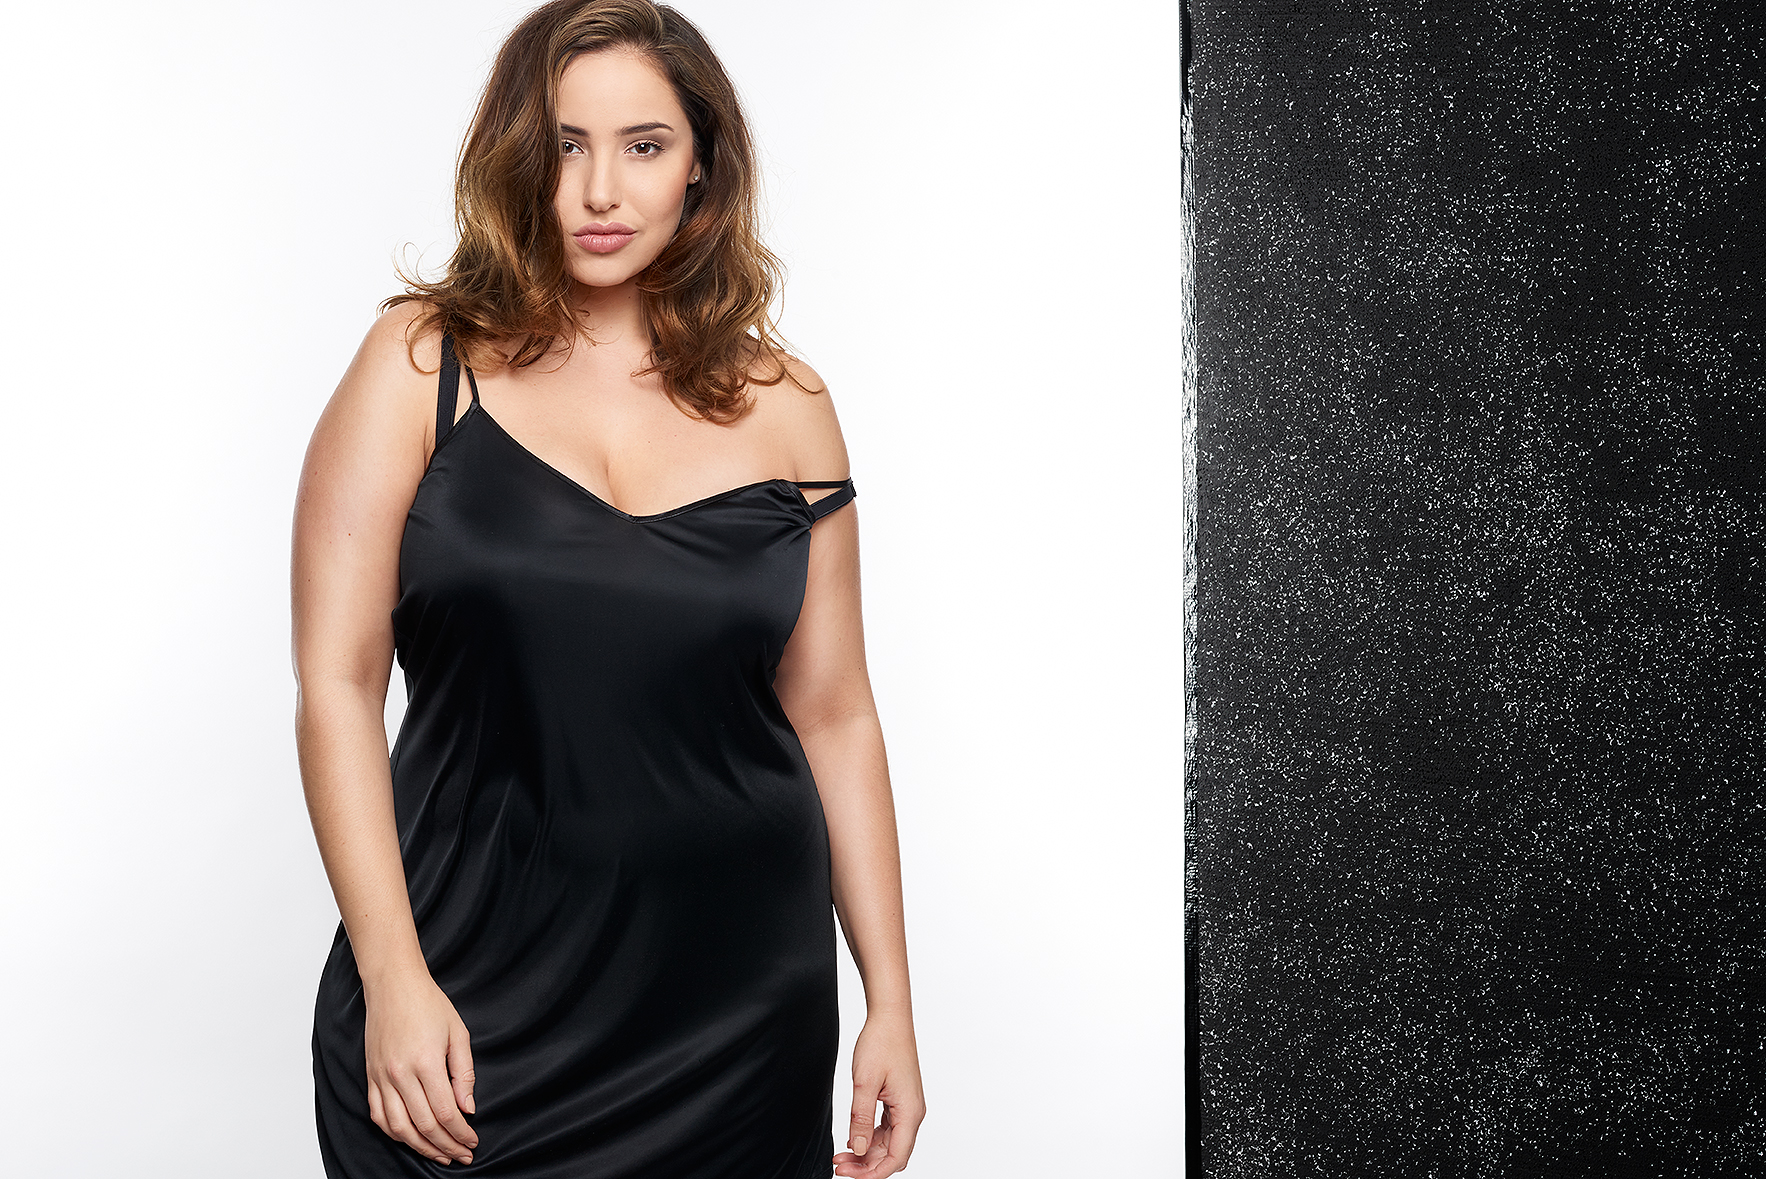 Jada-models-one-1-la-vie-en-lingerie-lingerie-la-femme-plus-size-model-black-slip-dress-01